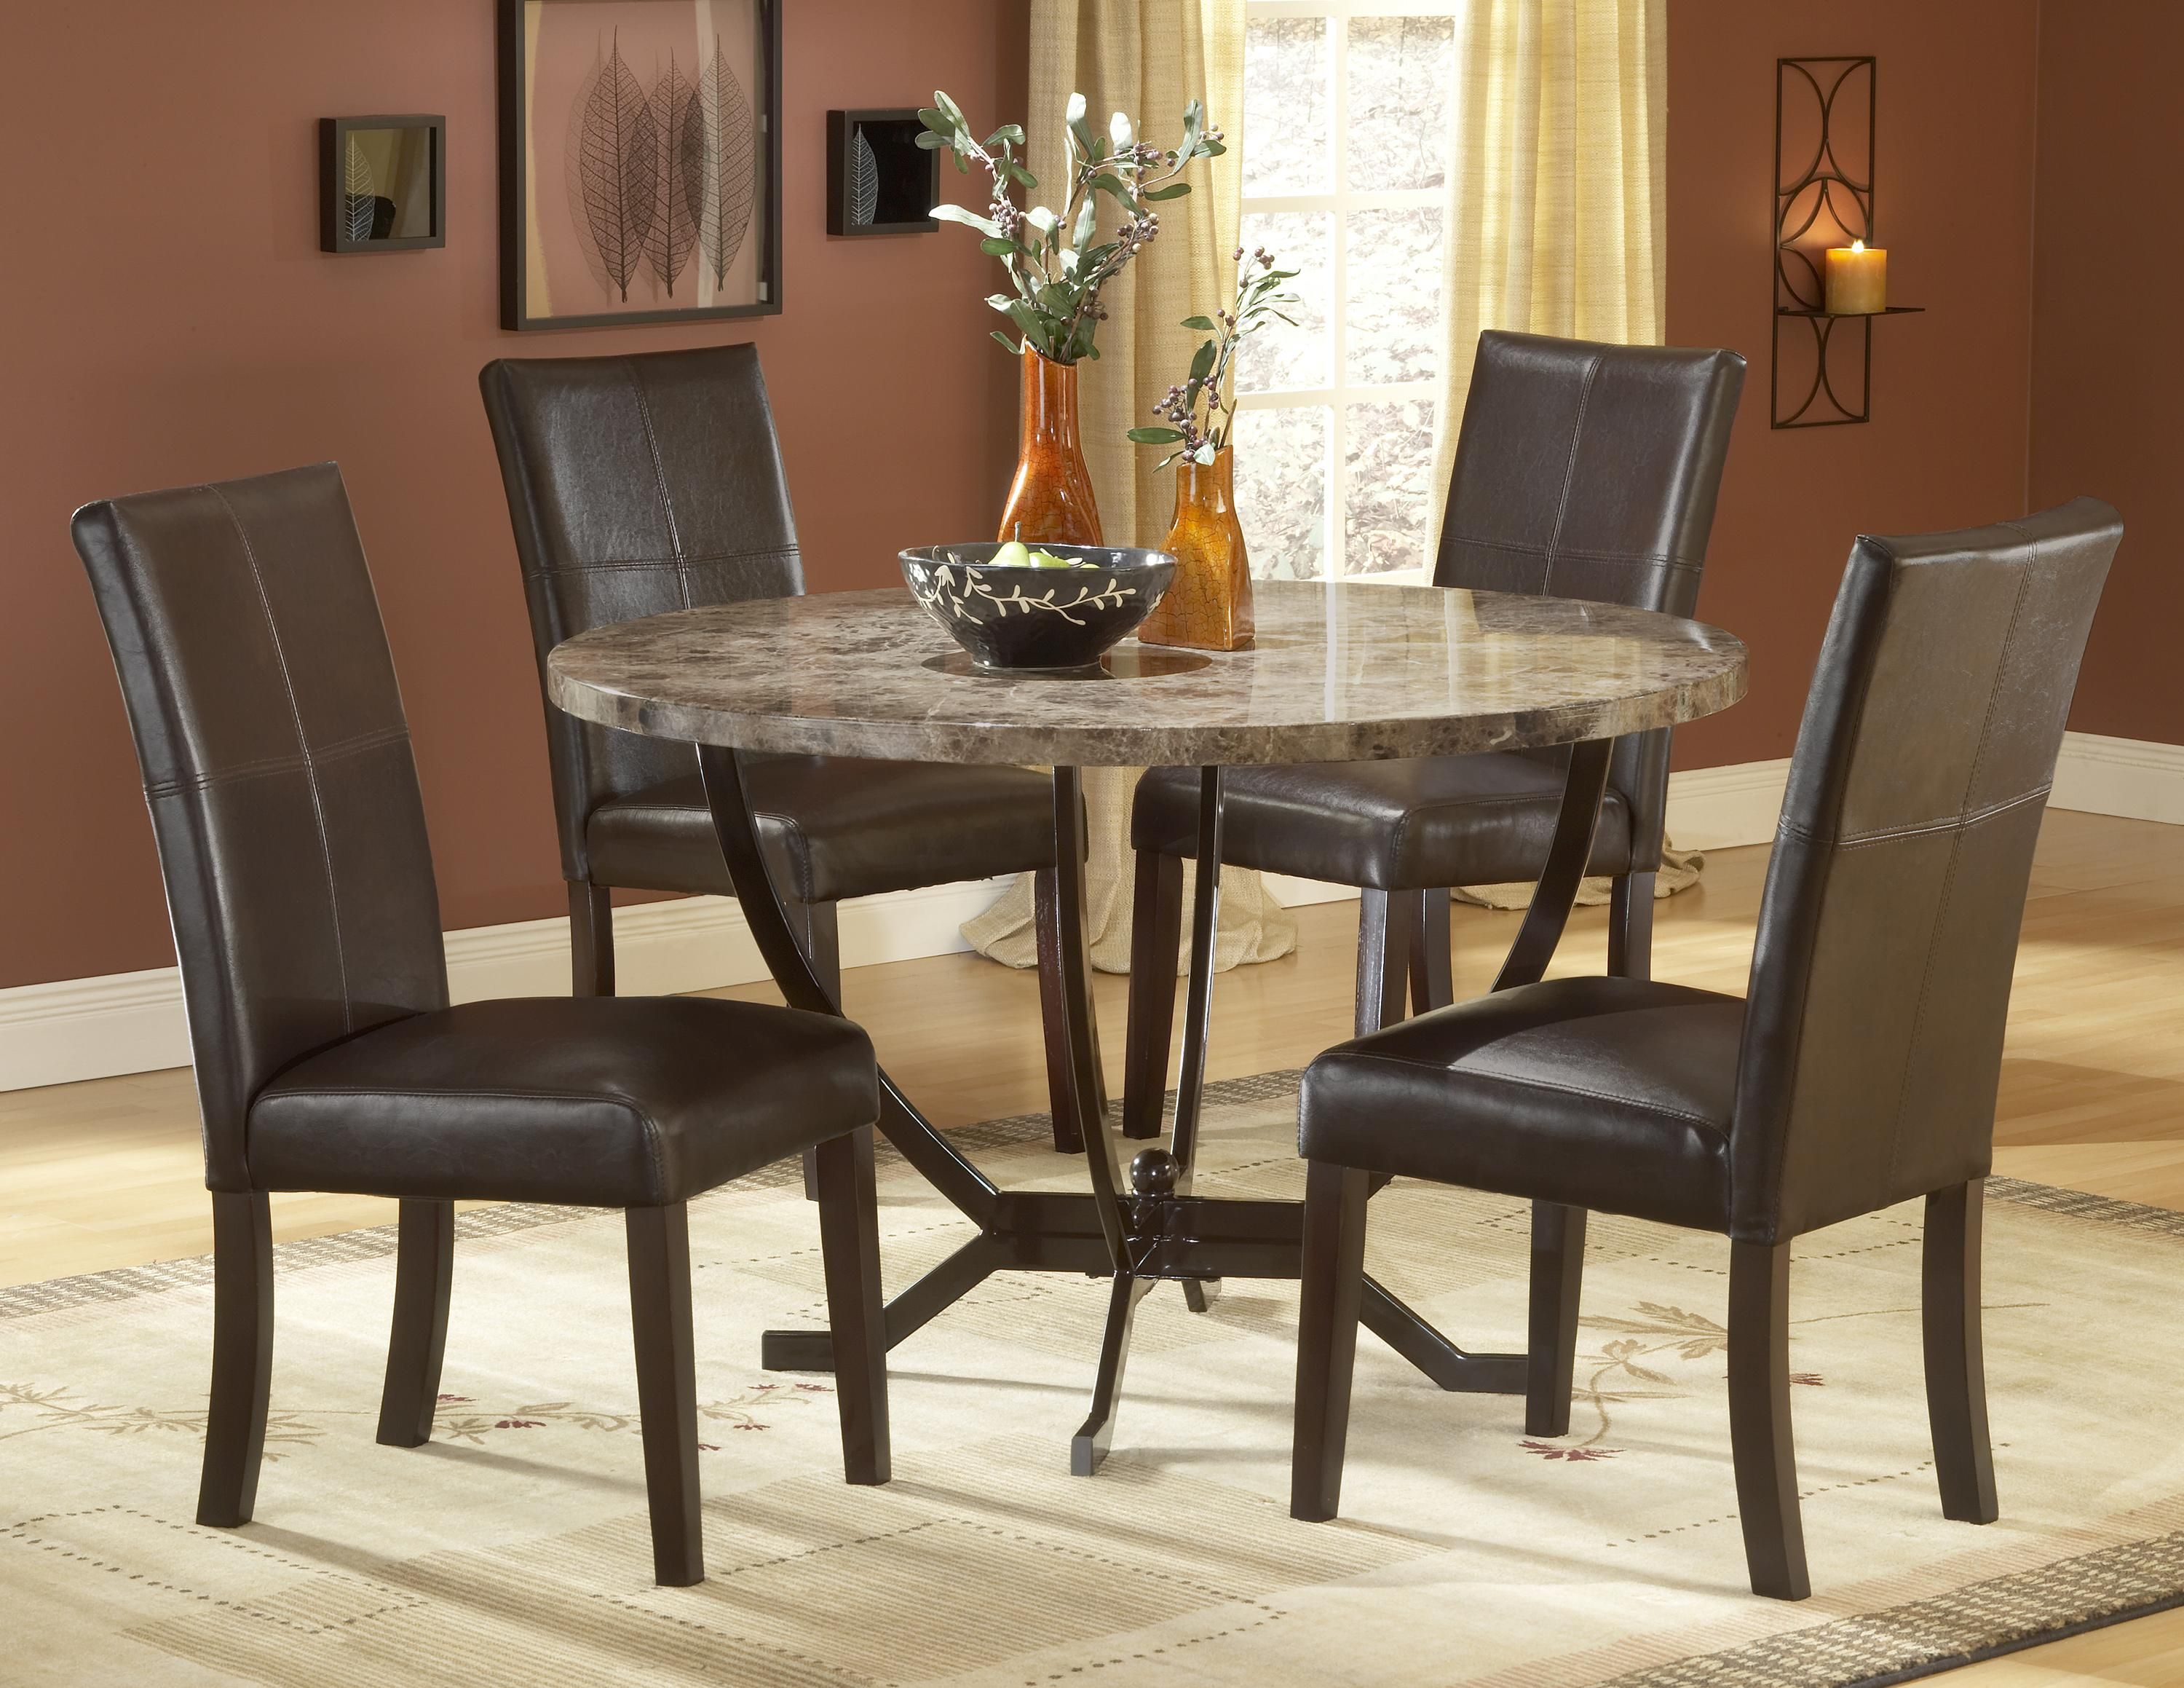 10 Small Dinette Set Design Small Round Dinette Set With 4 Dark Brown Chairs And Large Rug H Round Dining Table Round Dining Table Sets Round Dining Room